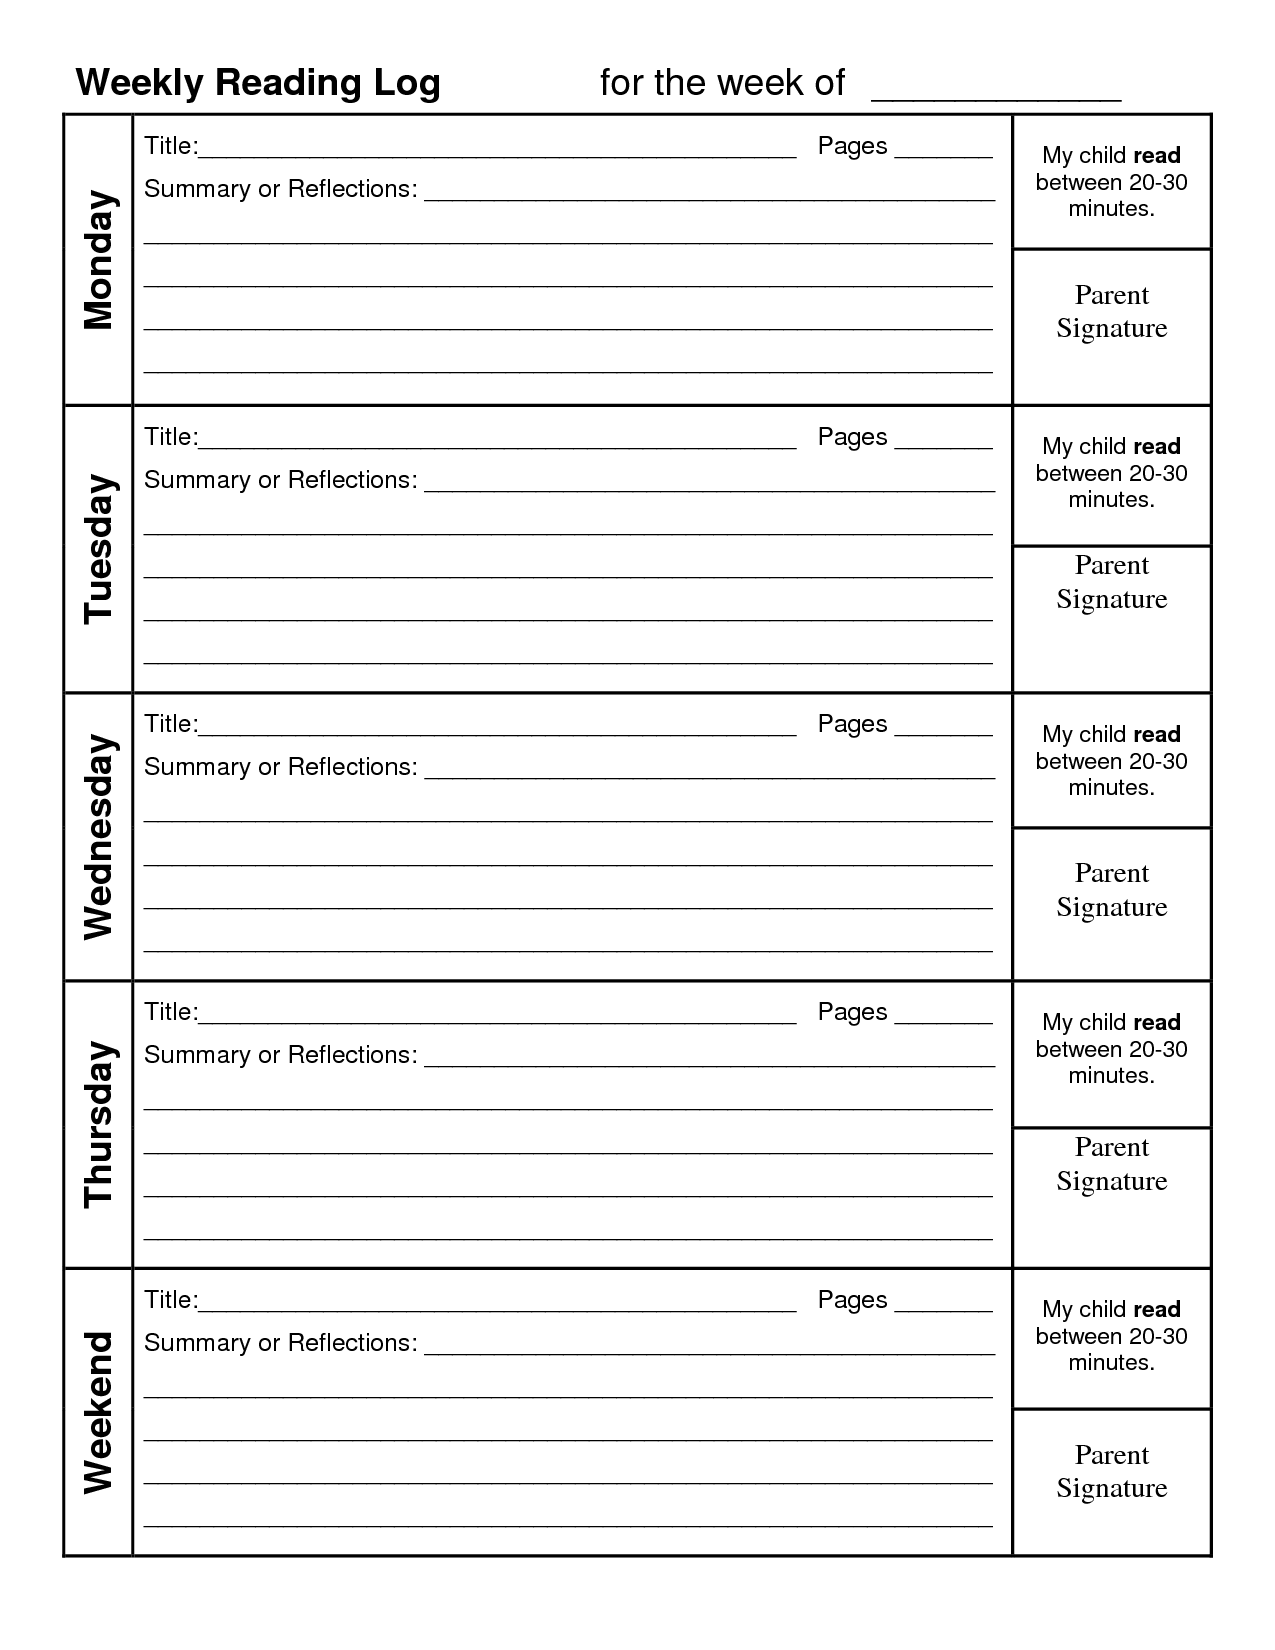 Weekly Reading Log With Summary